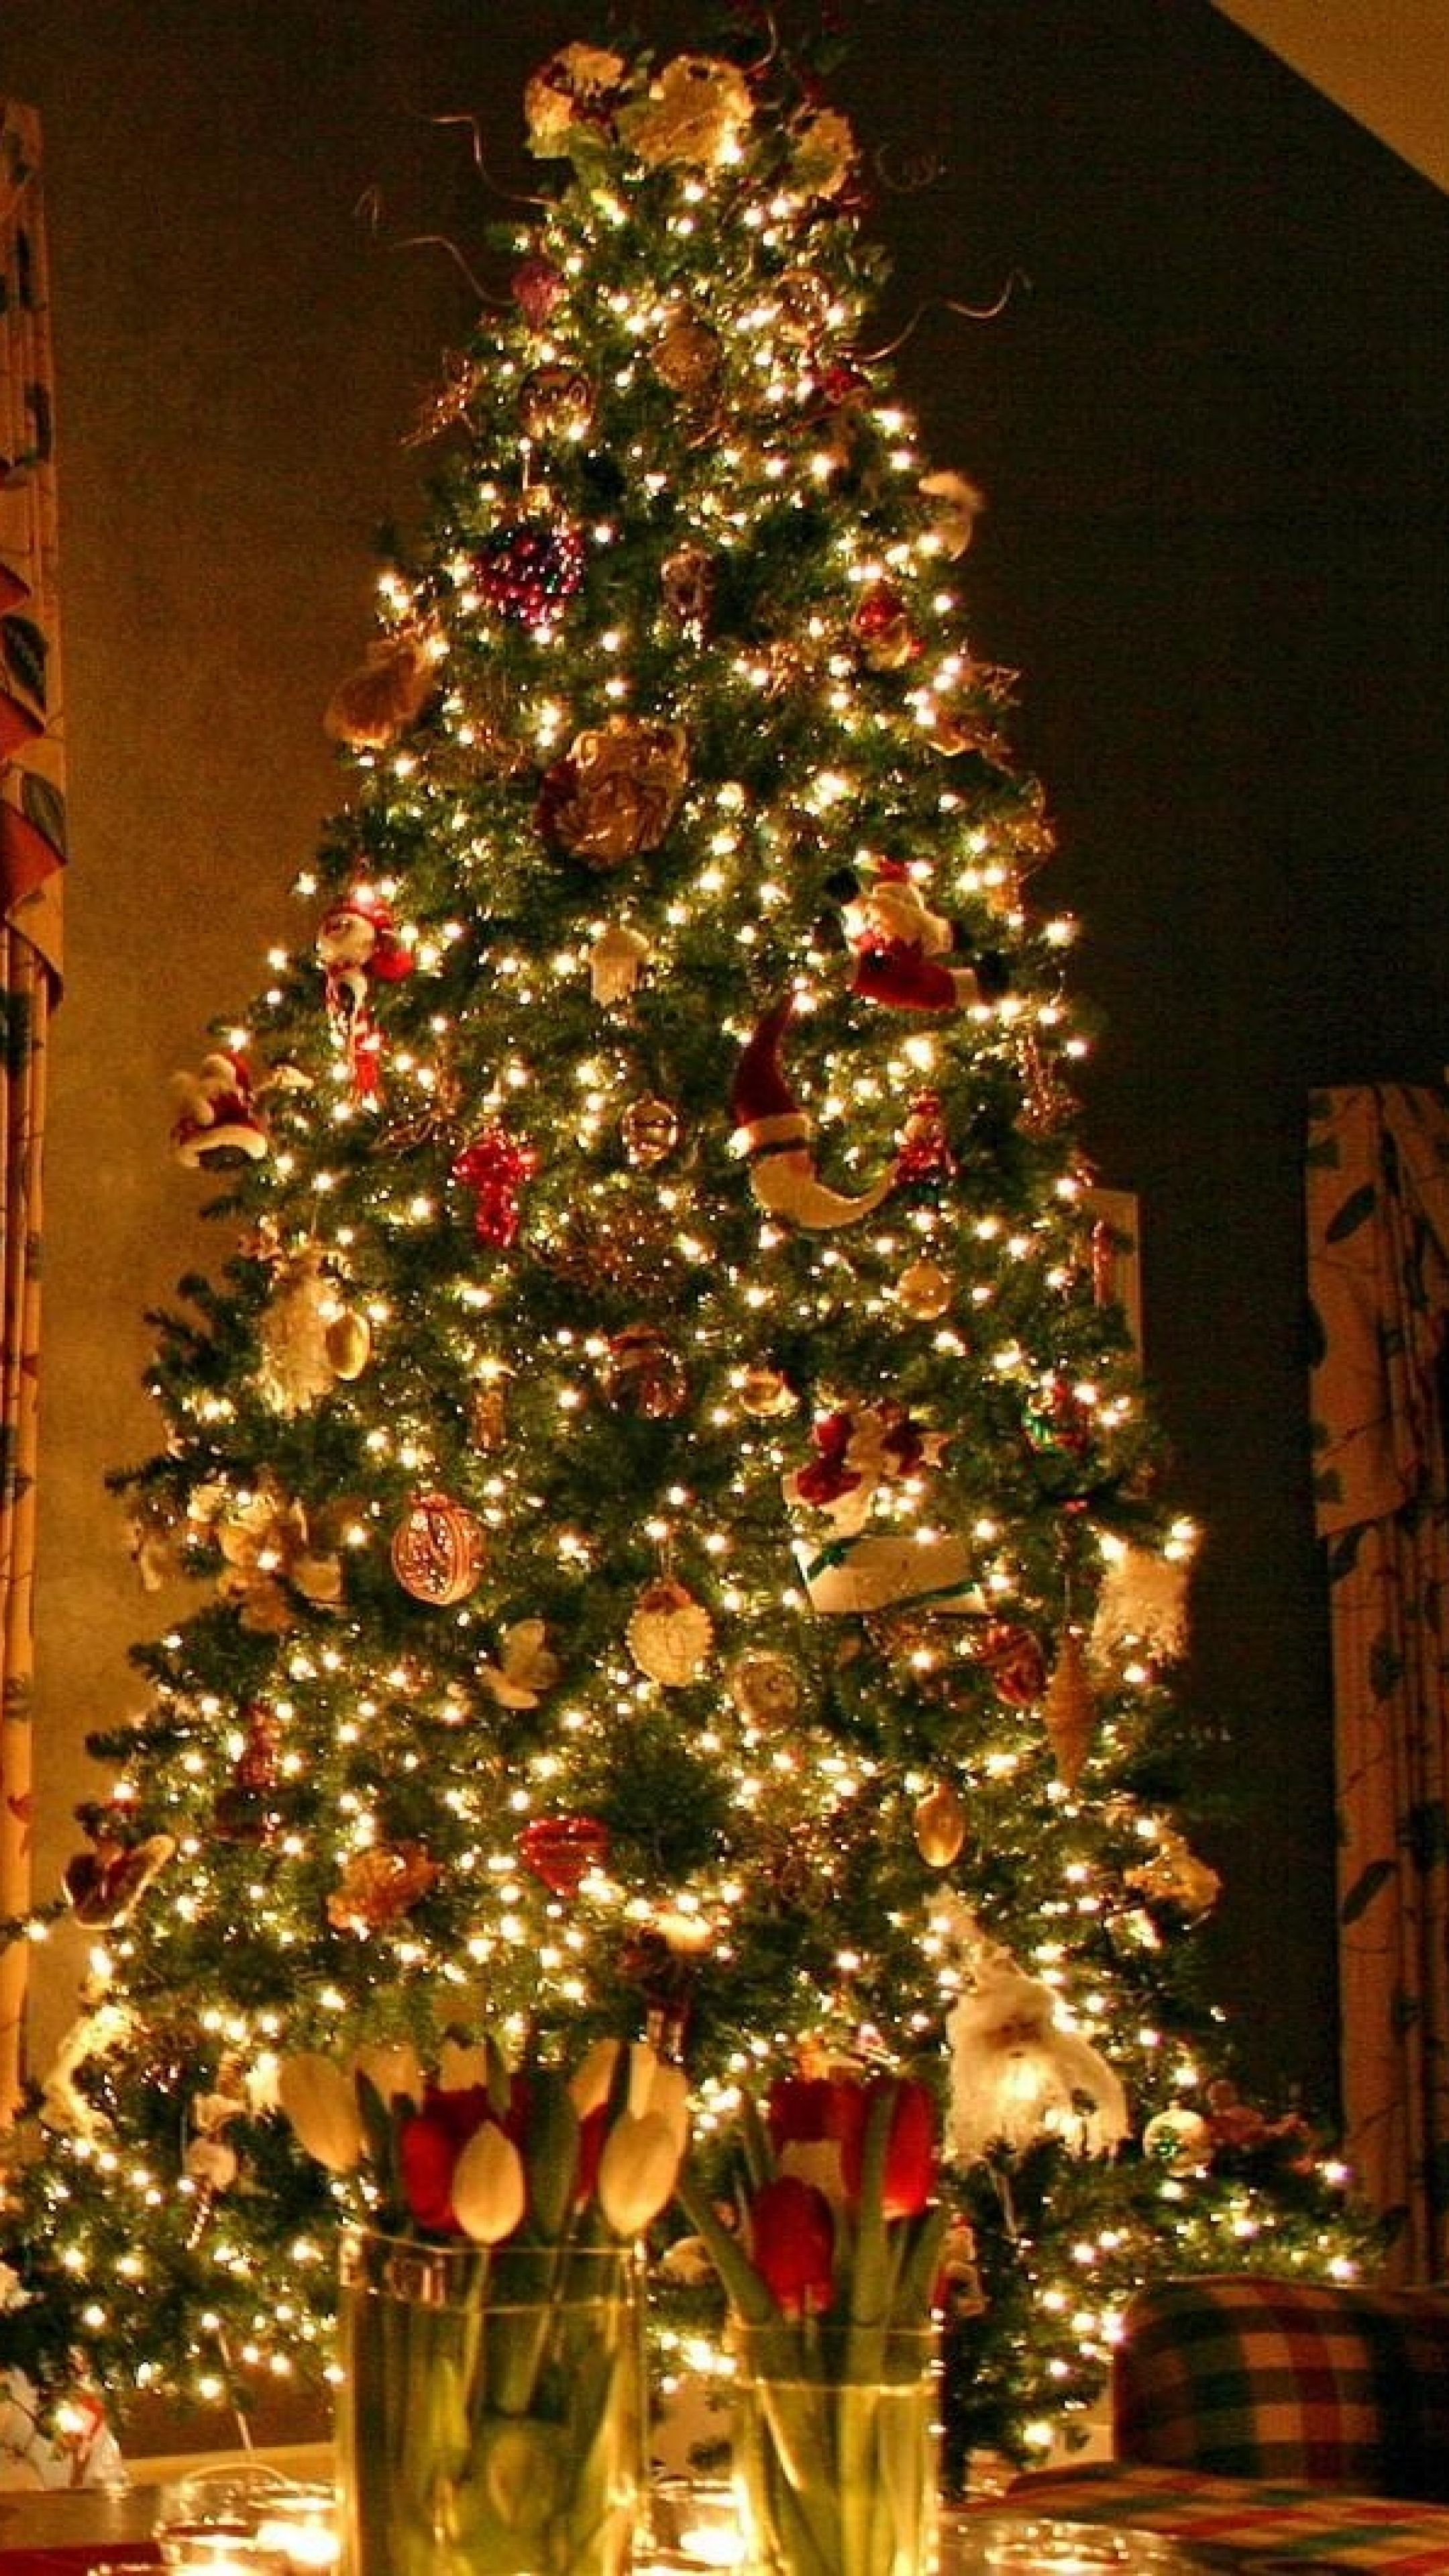 Download Wallpapers 2160x3840 Christmas tree, Ornaments, Fireplace